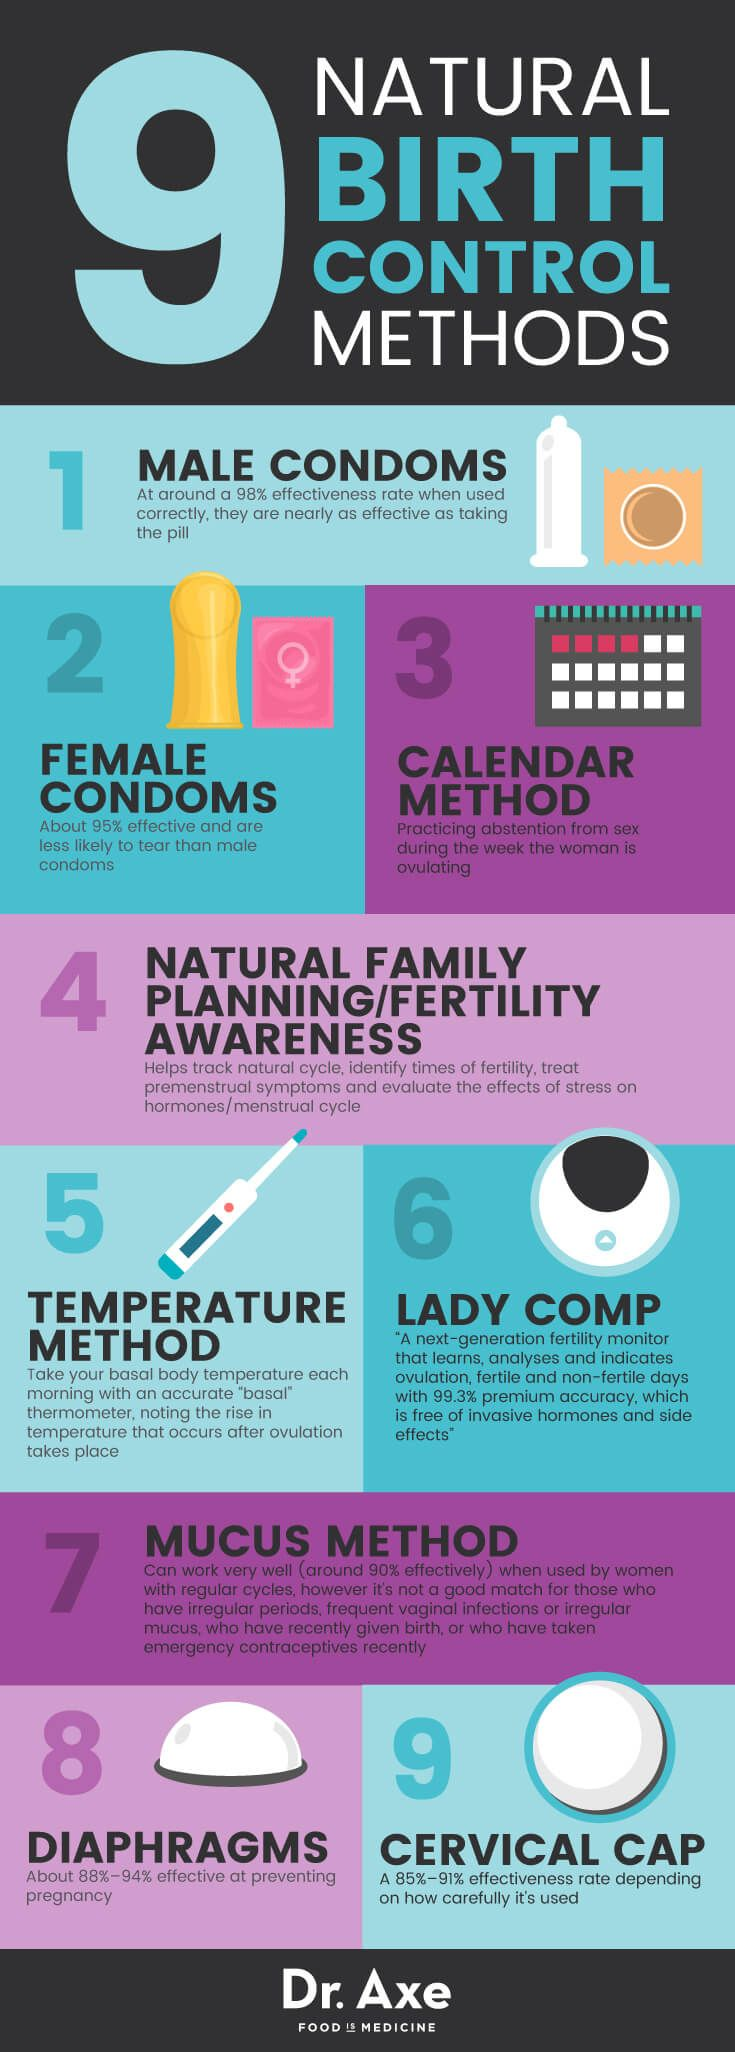 Natural birth control methods - Dr. Axe http://www.draxe.com #health #holistic #natural